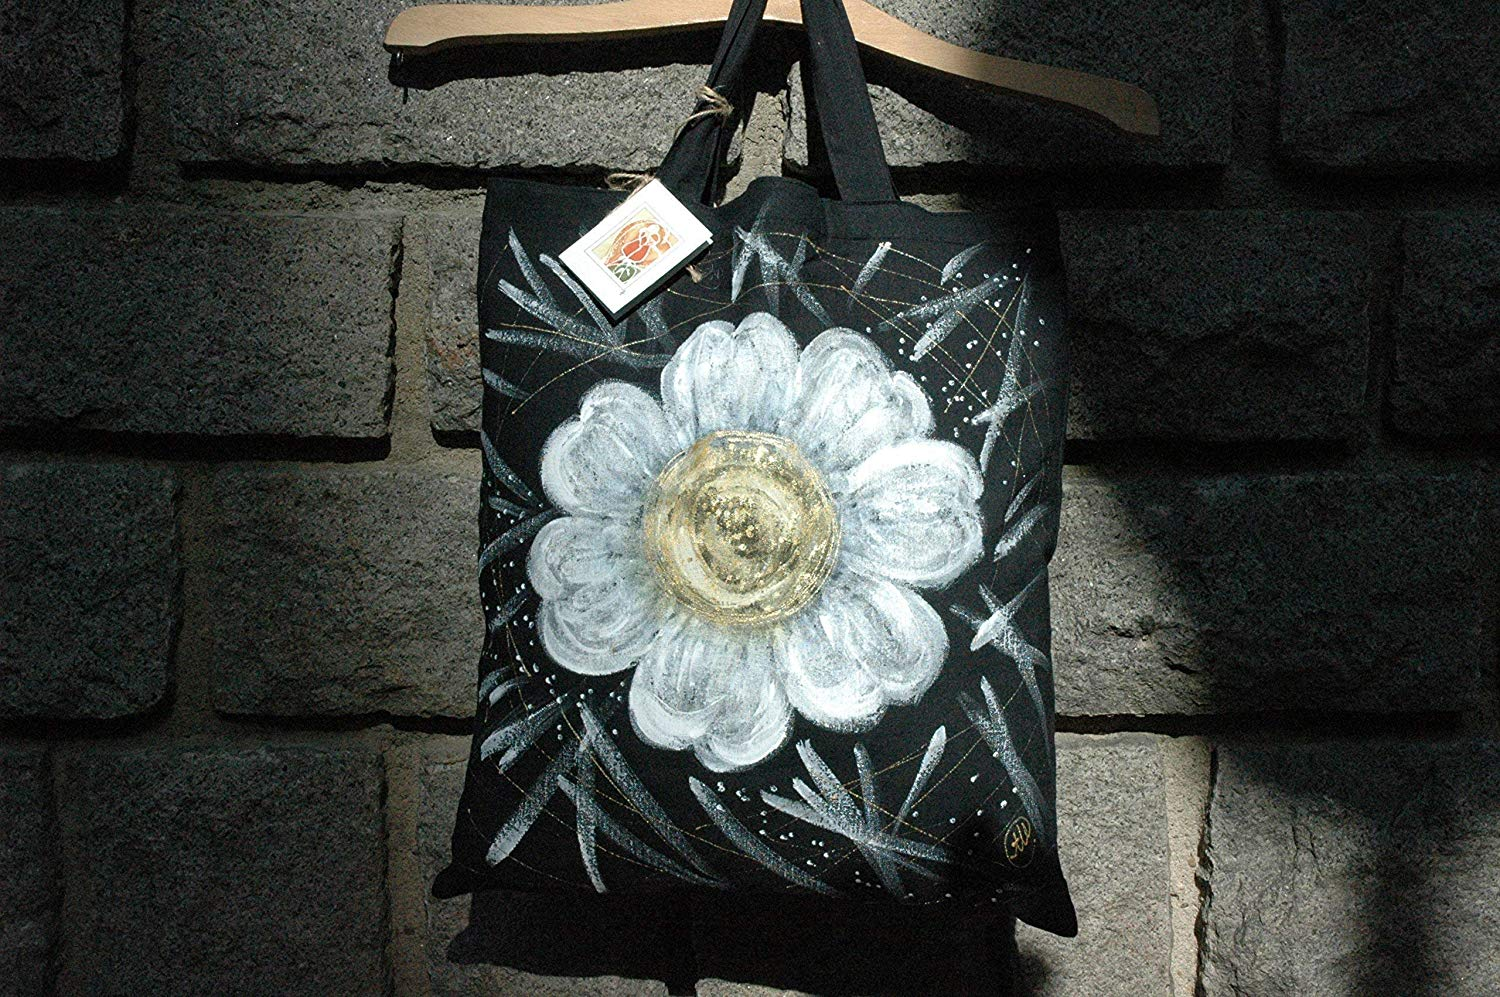 Sale!!!15% Off,Hand Painted White Daisy Tote Bag,Flower Tote Bag,Daisy Shopping Bag,Cotton tote bag,Daisy Gift Bags,Birthday gift Bag,Black Bag,Woman Gifts